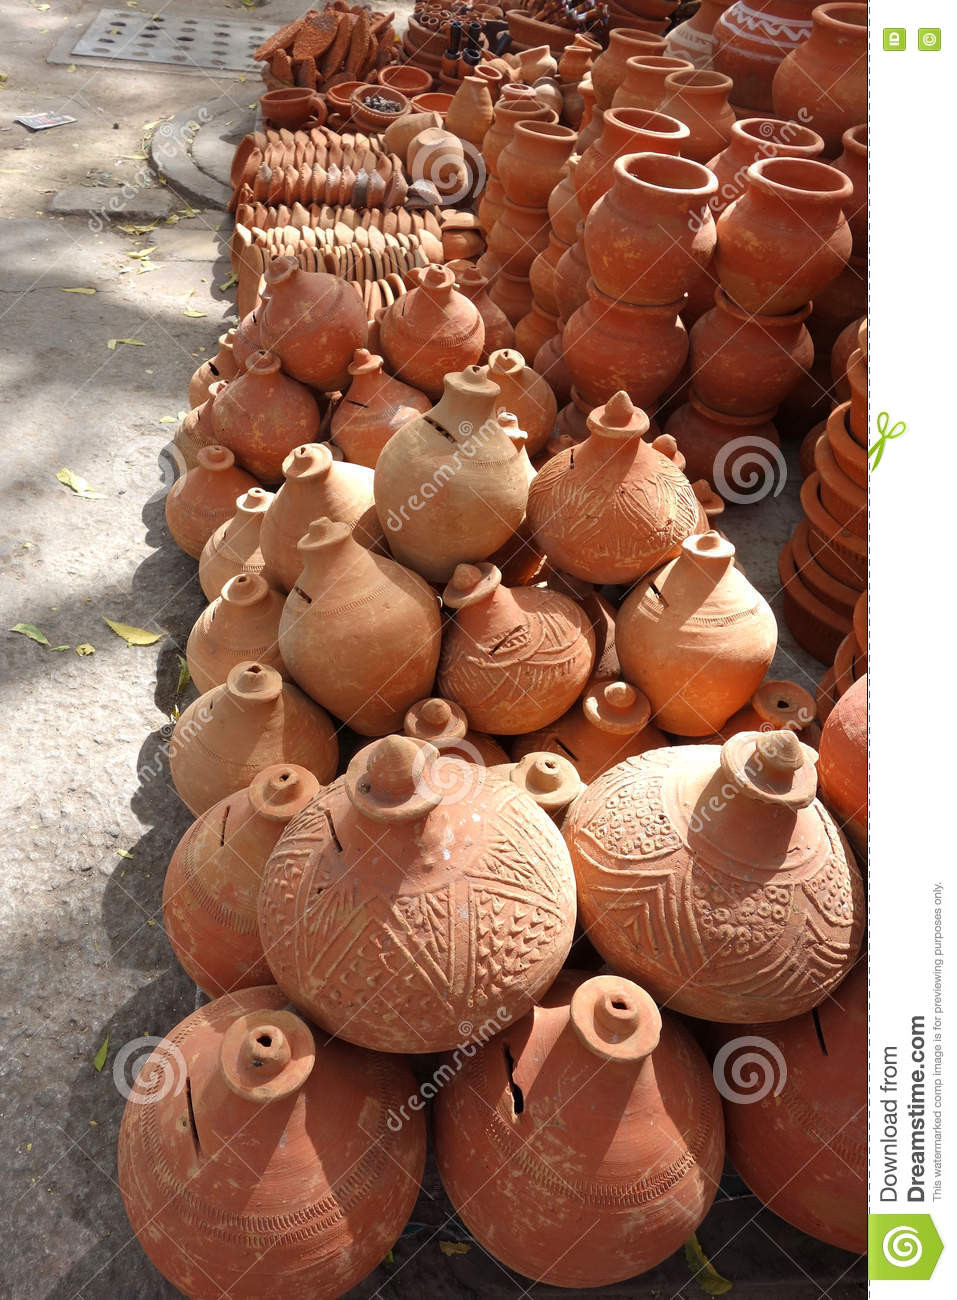 New Clay Pots for Sale the Street Stock Image Pottery Clay for Sale Of Unique Traditional Ceramic Jugs Decorative towel Showcase Pottery Clay for Sale